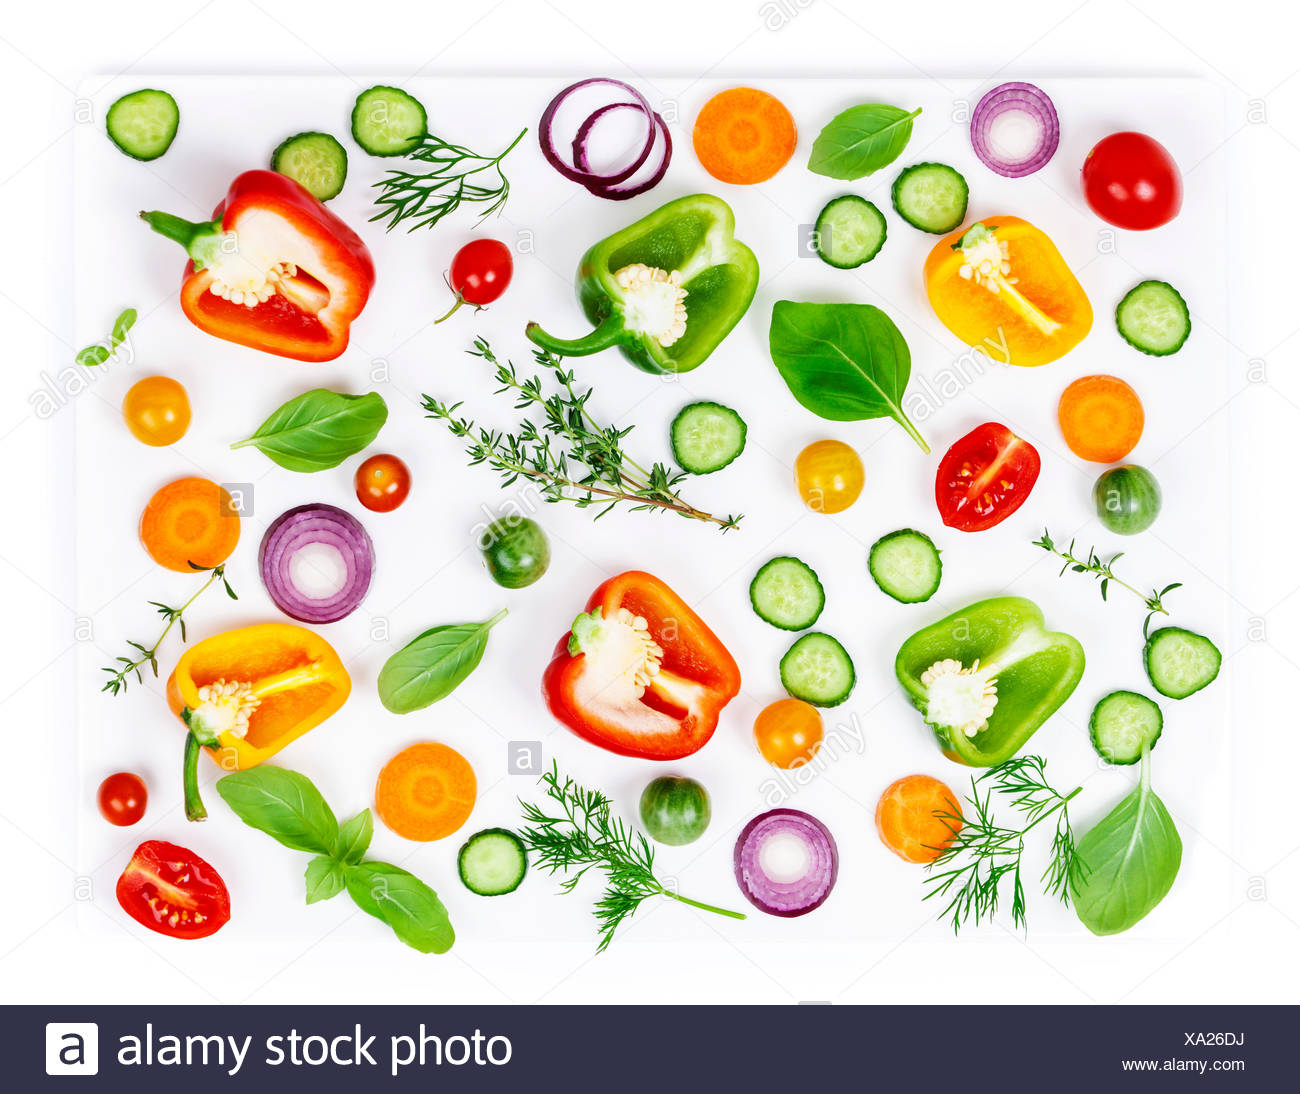 Composition of Fresh organic vegetables (pepper, onion, cucumber, carrot, tomatoe), herbs, olive oil and vinegar  isolated on white background, top vi - Stock Image